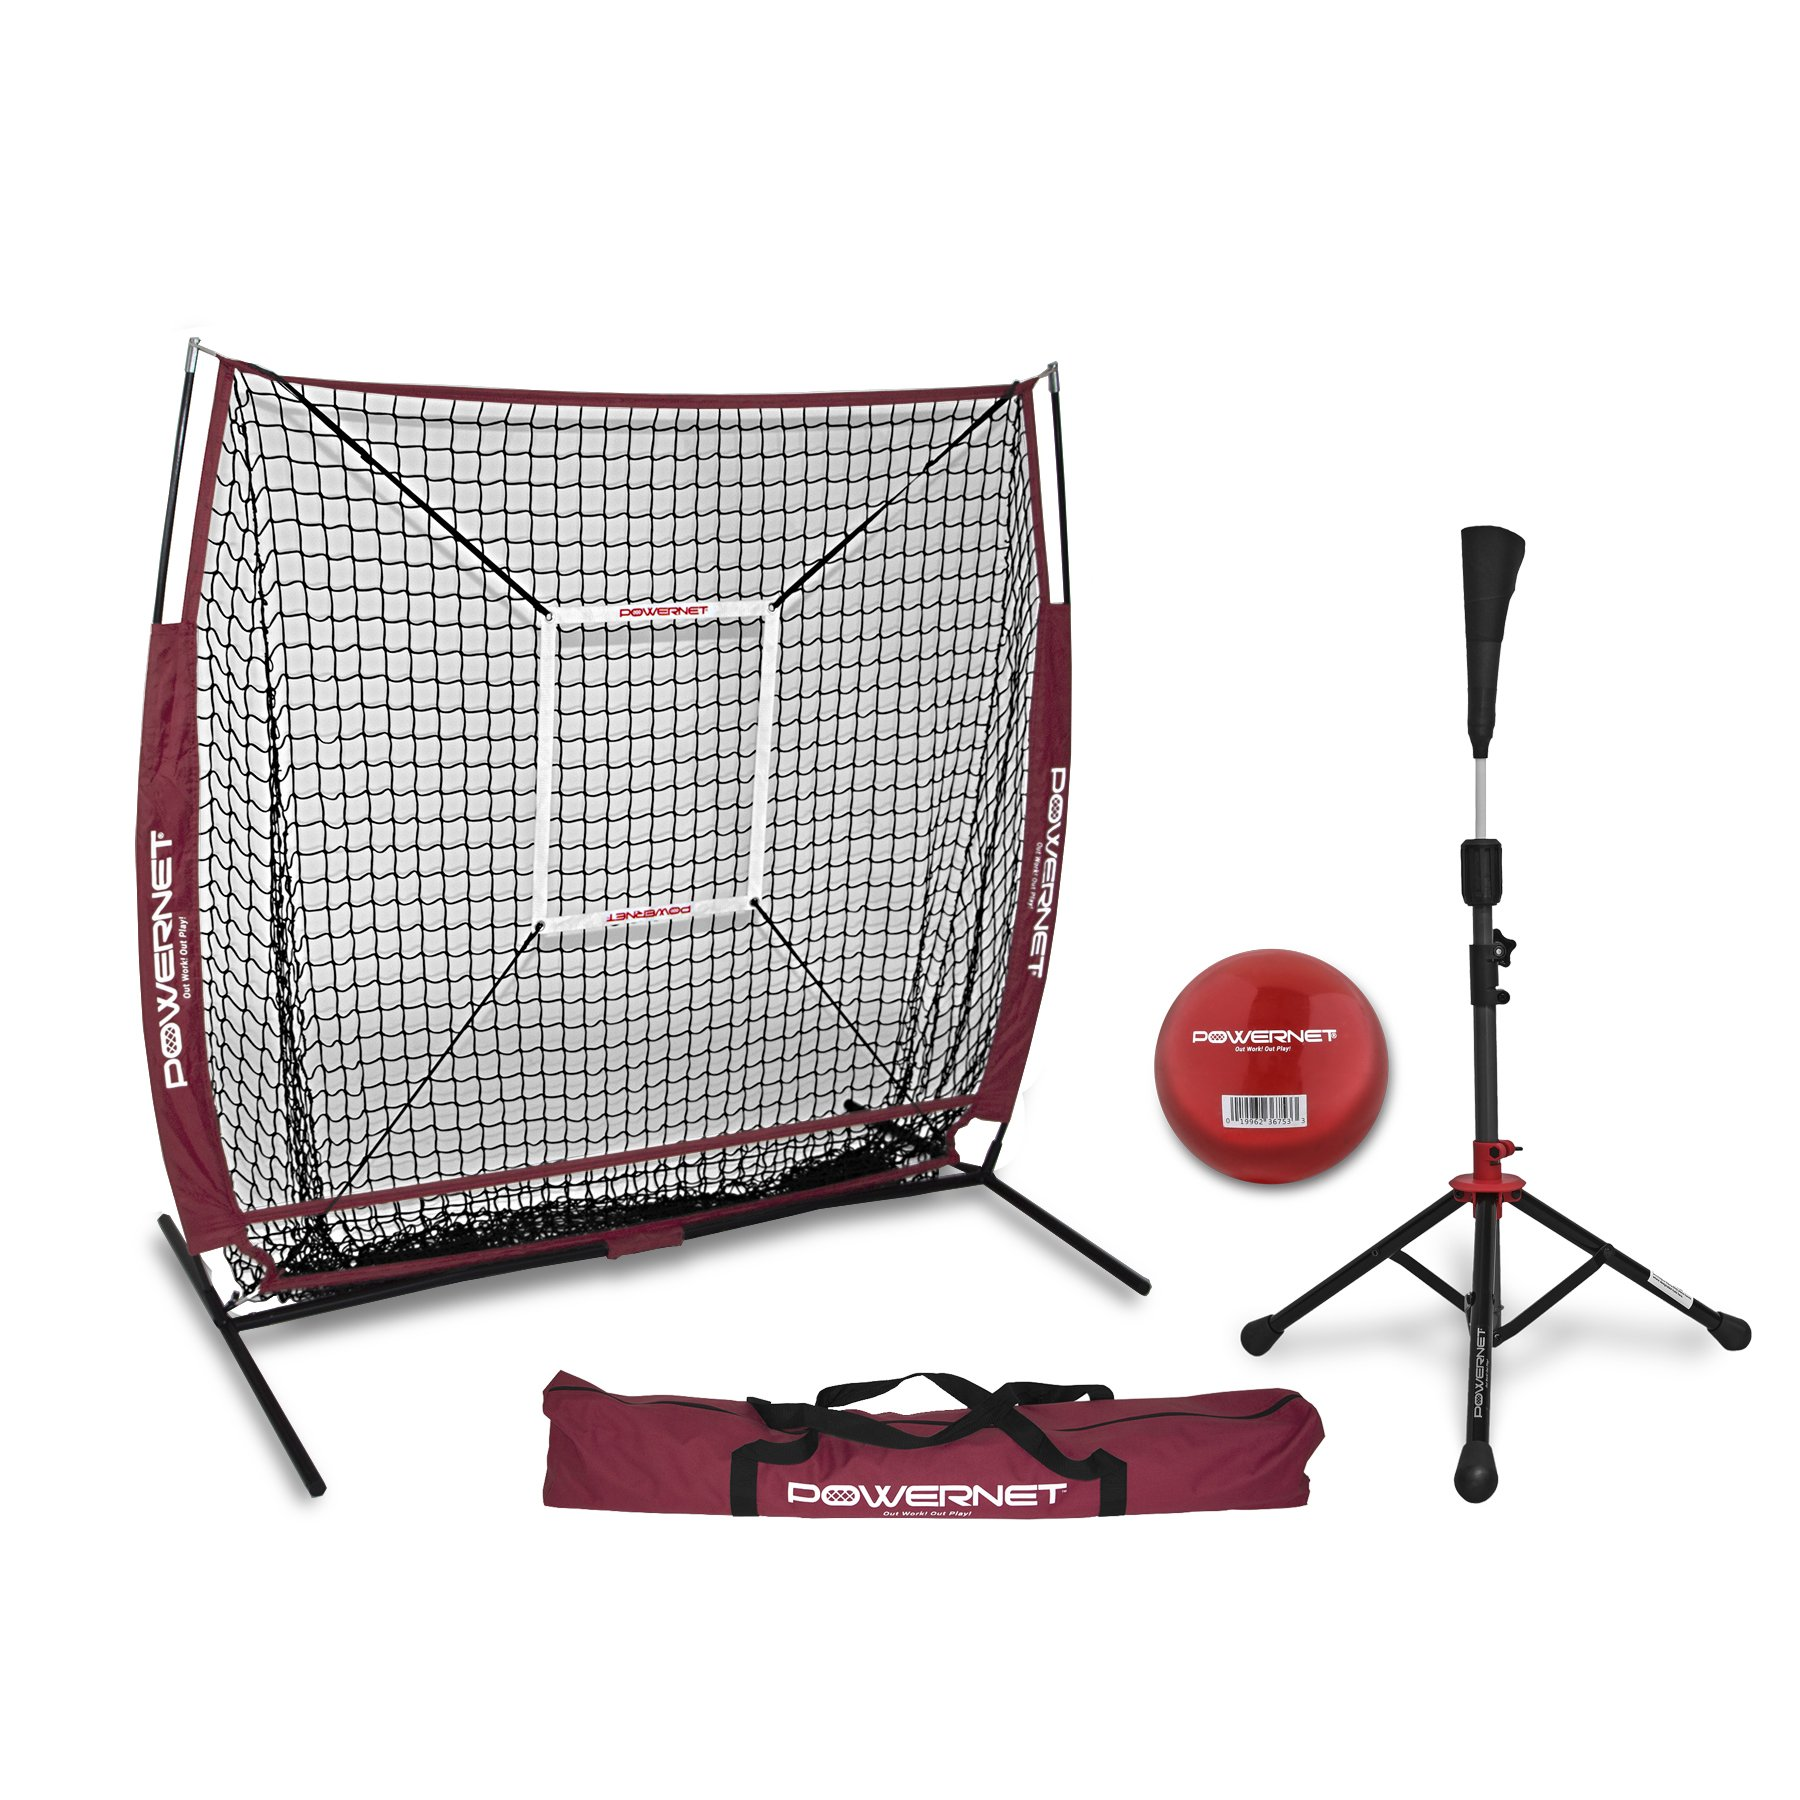 PowerNet 5x5 Practice Net + Deluxe Tee + Strike Zone + Weighted Training Ball Bundle (Maroon) | Baseball Softball Pitching Batting Coaching Pack | Work on Pitch Accuracy | Build Plate Confidence